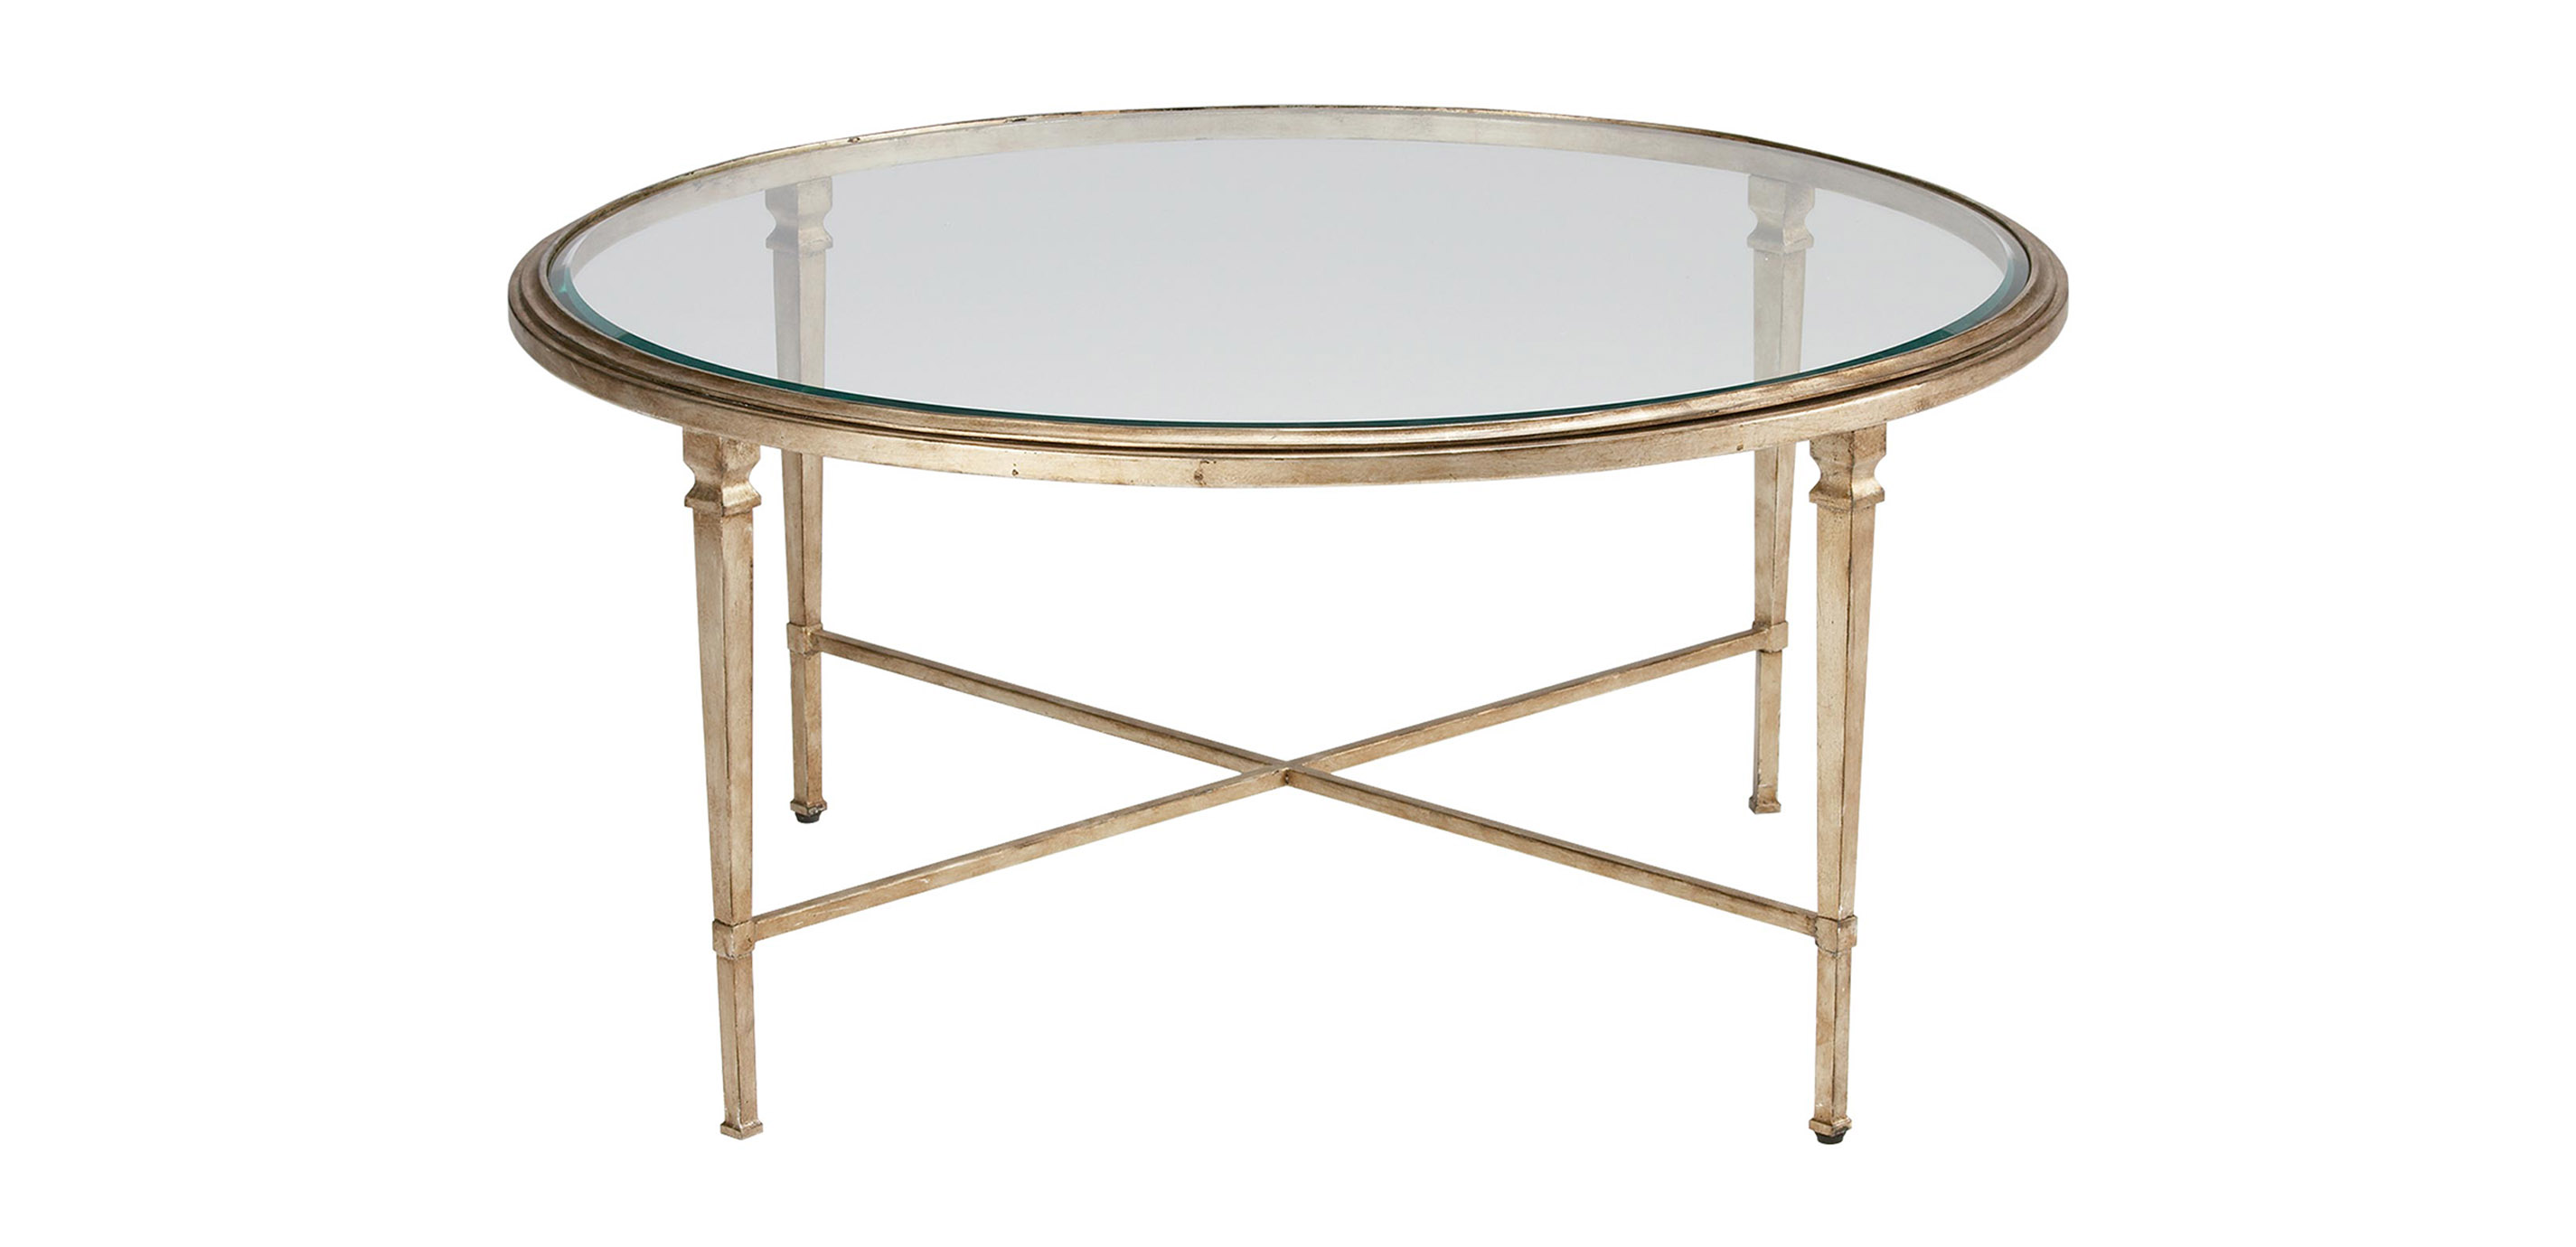 Heron round coffee table ethan allen Round espresso coffee table